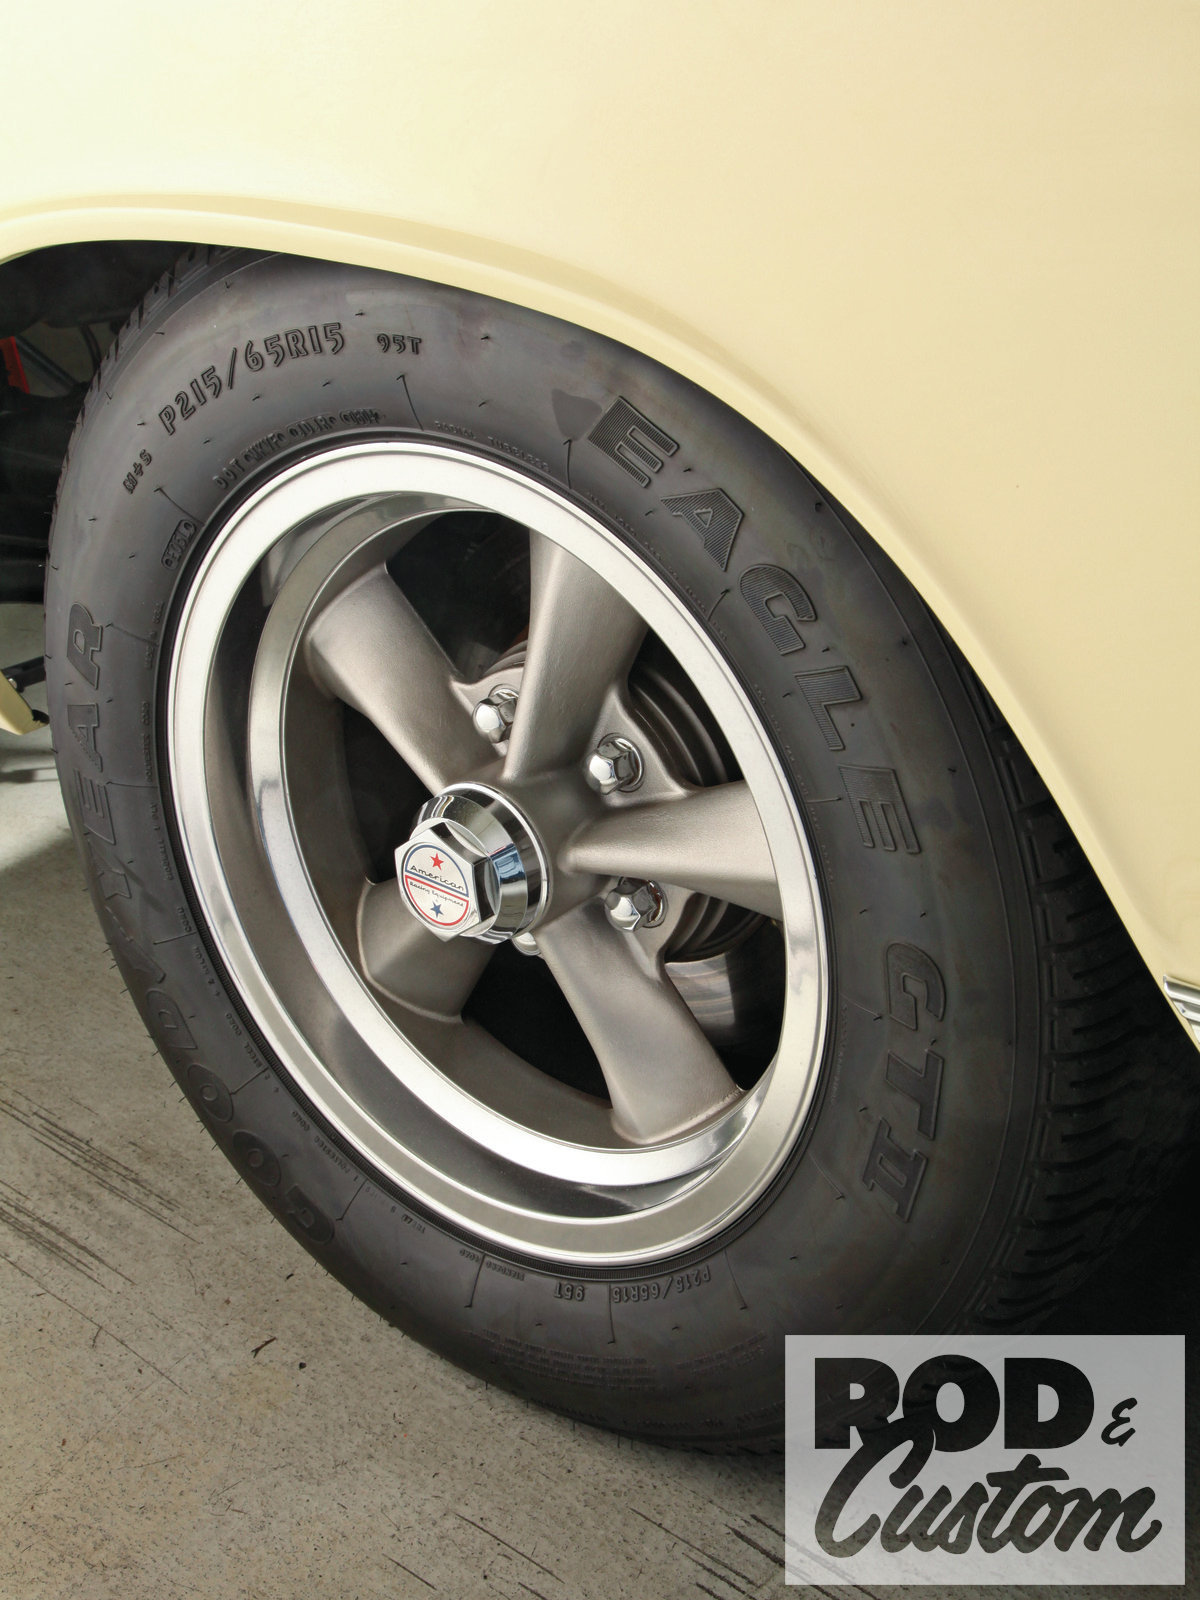 The Torq-Thrust R wheel came out in 1969. It features straight, highly peaked spokes and a snap-in center cap. The T70 wheel that American introduced the following year (and reissued recently) resembles it but has a perimeter flange around each spoke.